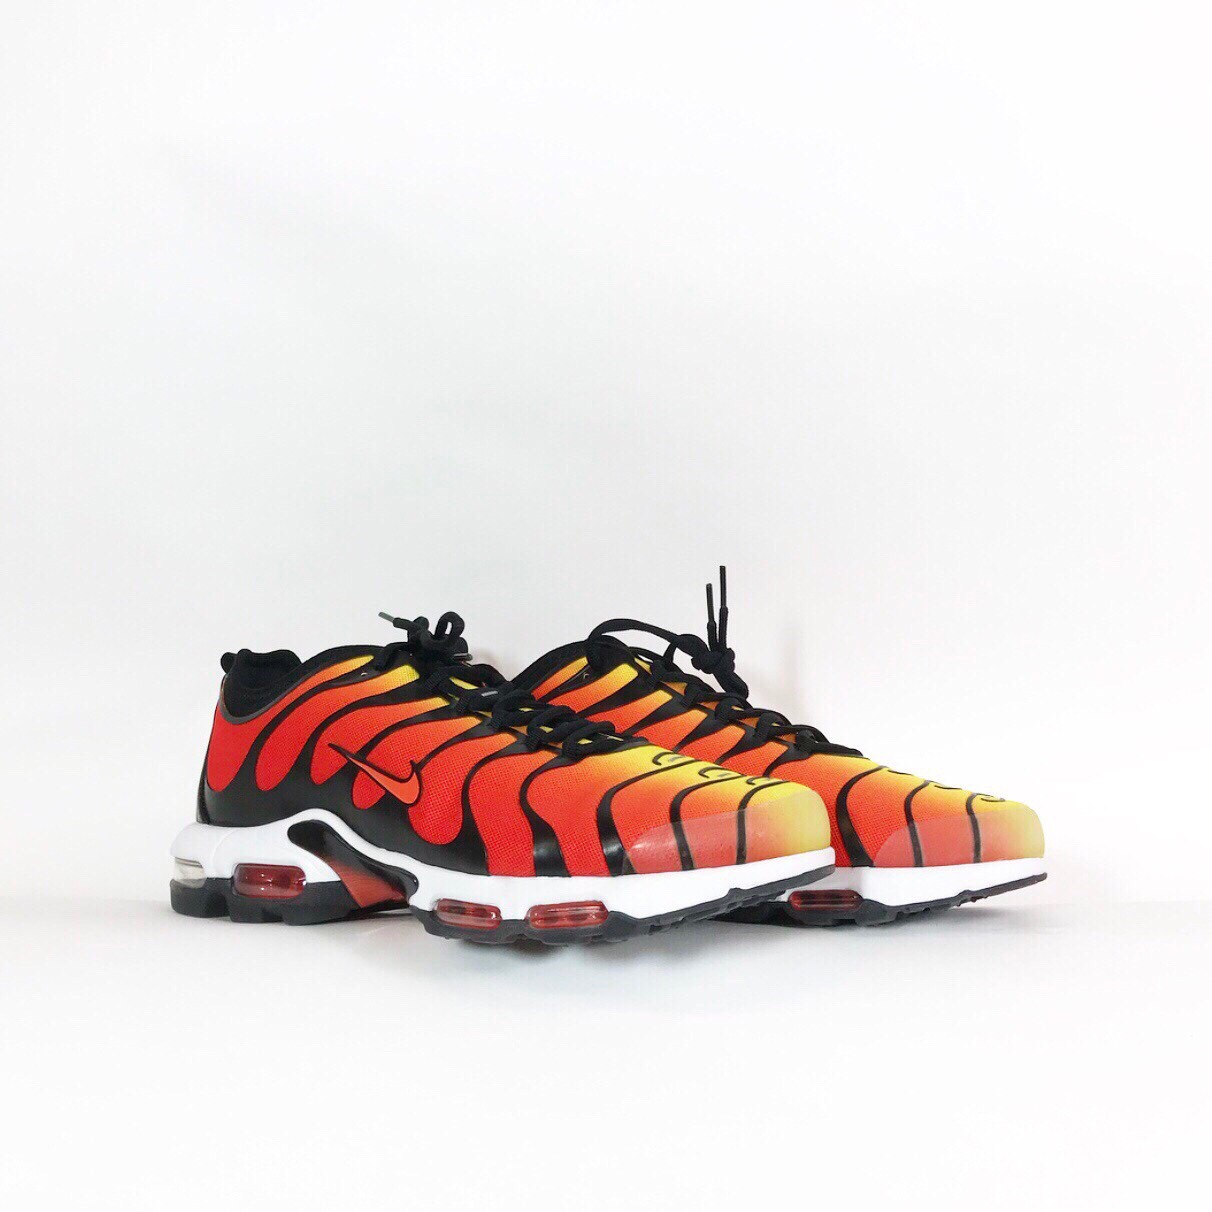 separation shoes b8cc1 729c7 Nike Air Max Plus TN Ultra Tiger | Brand new with... - Depop